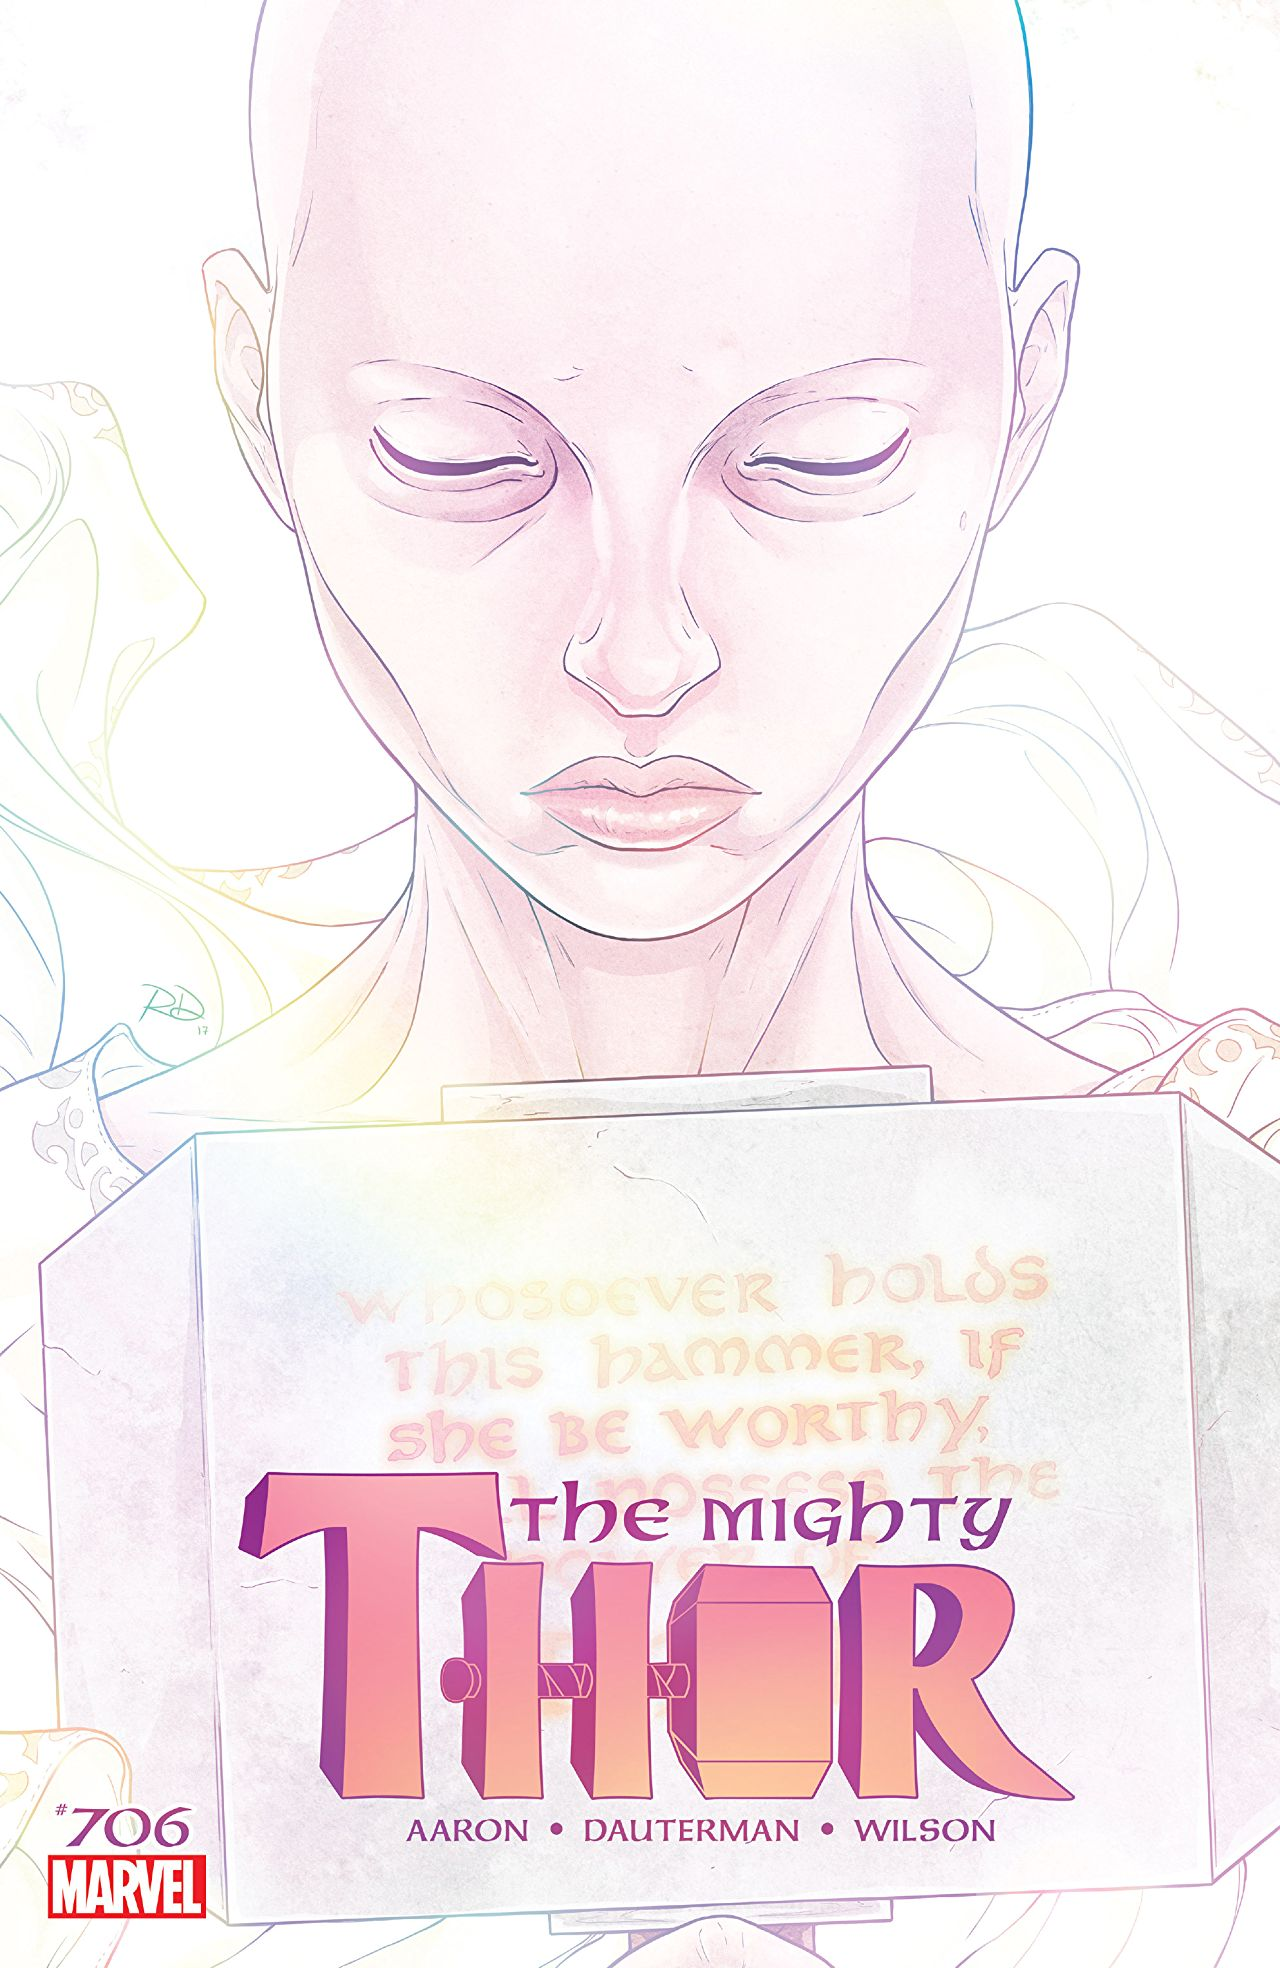 The Mighty Thor #706 Review